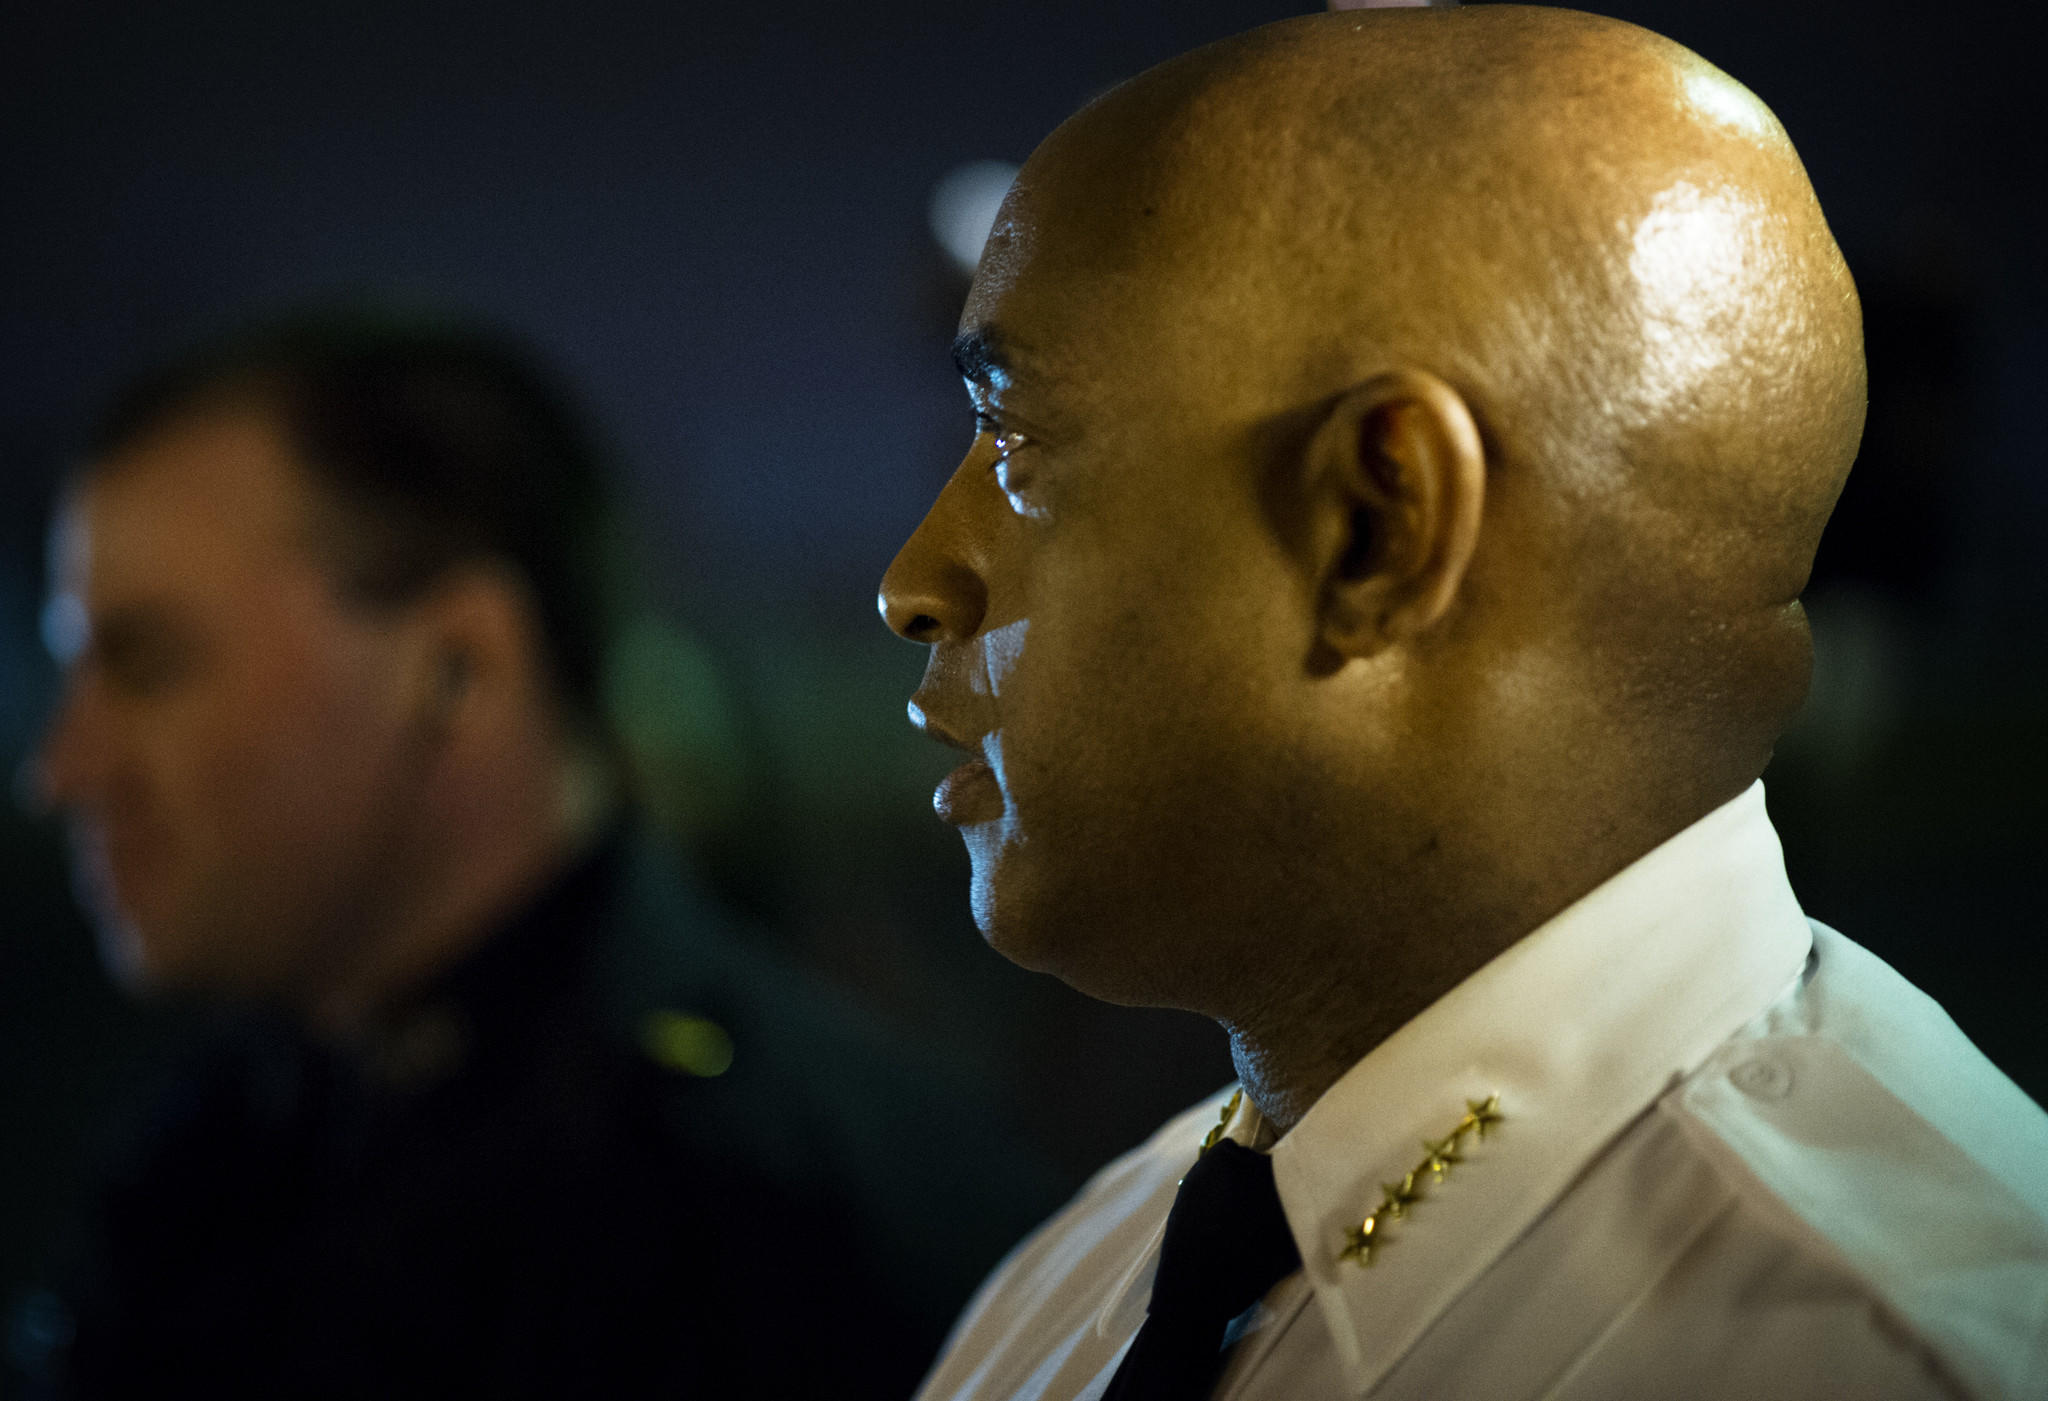 BALTIMORE, MD -- 11/12/13 -- Baltimore police commissioner Anthony W. Batts is shown in this file photo.